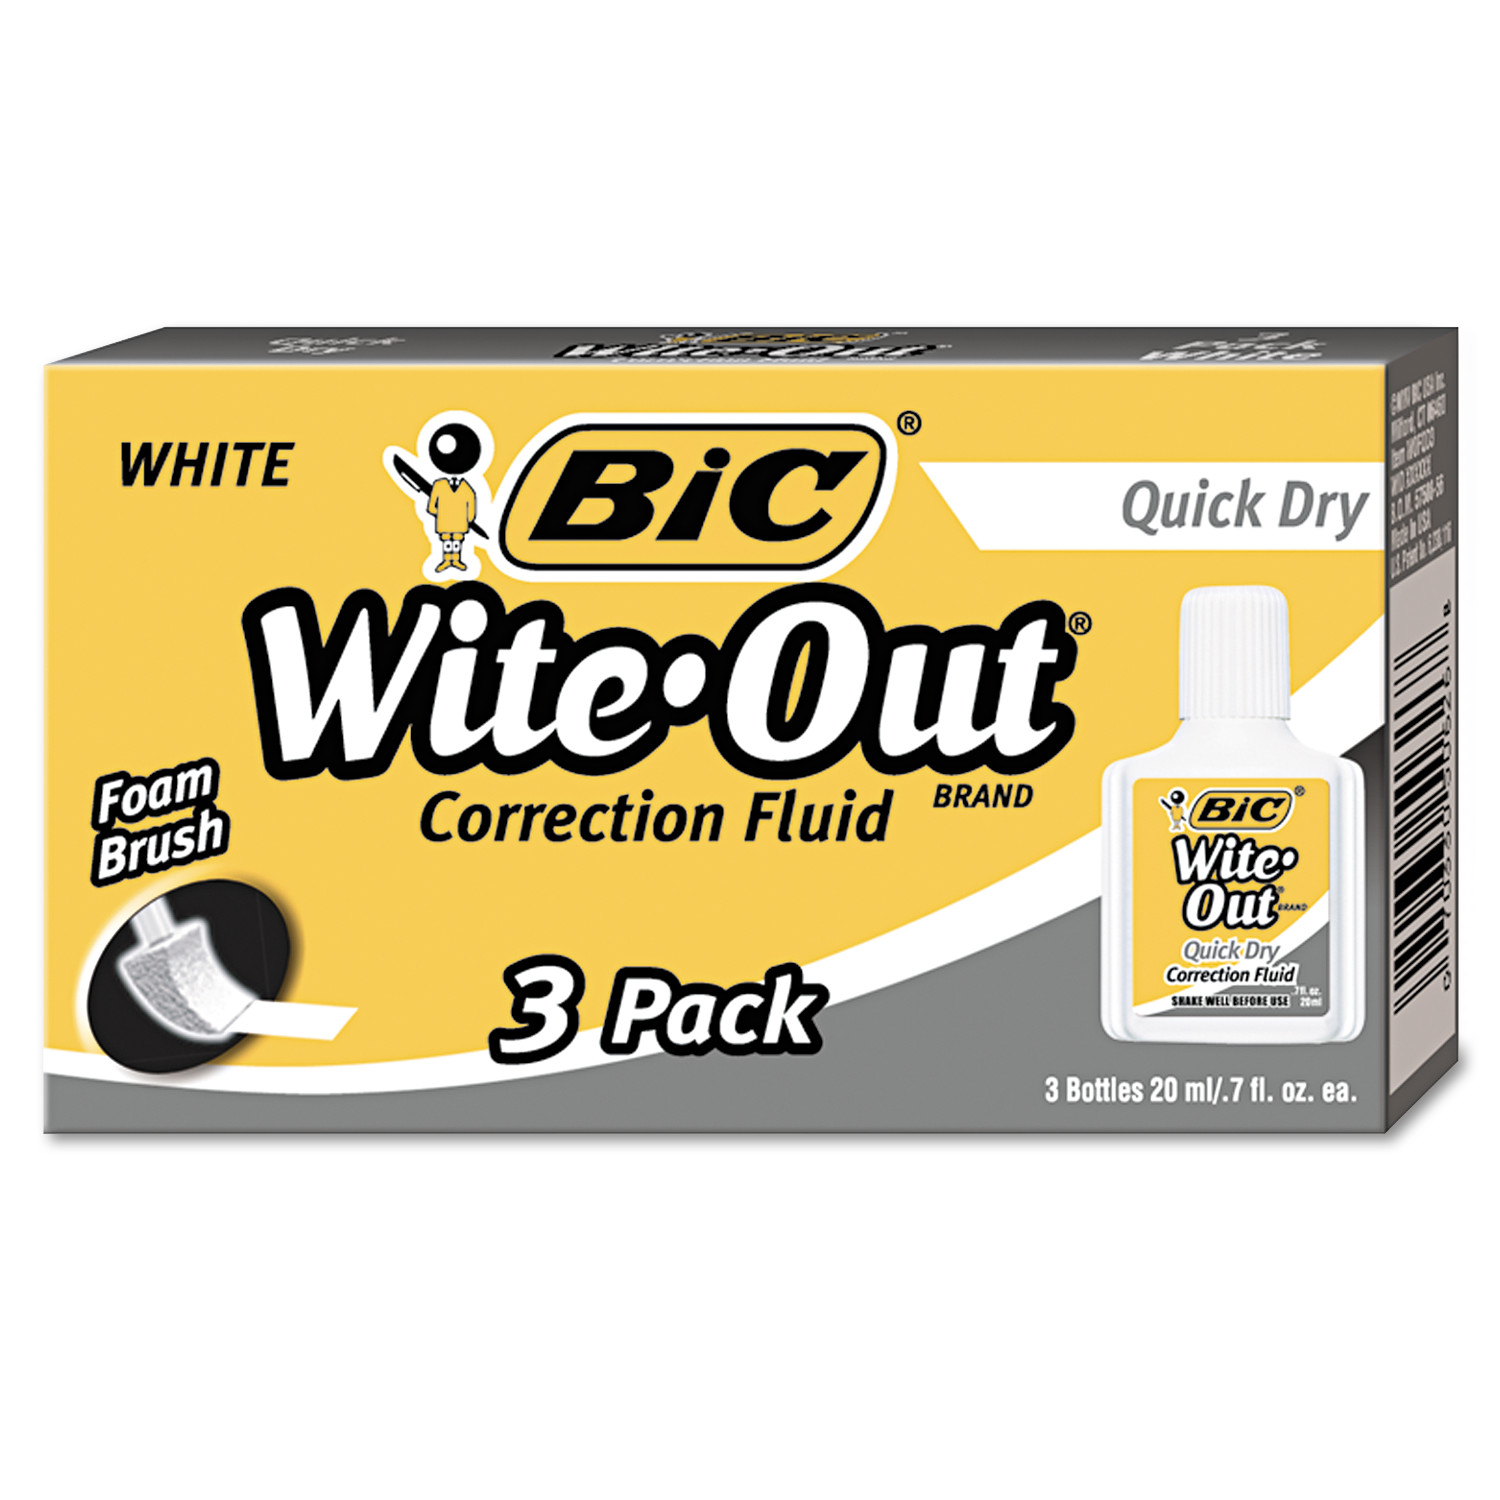 Bic Wite-Out Quick Dry Correction Fluid, 20ml Bottle, White, 3-Count